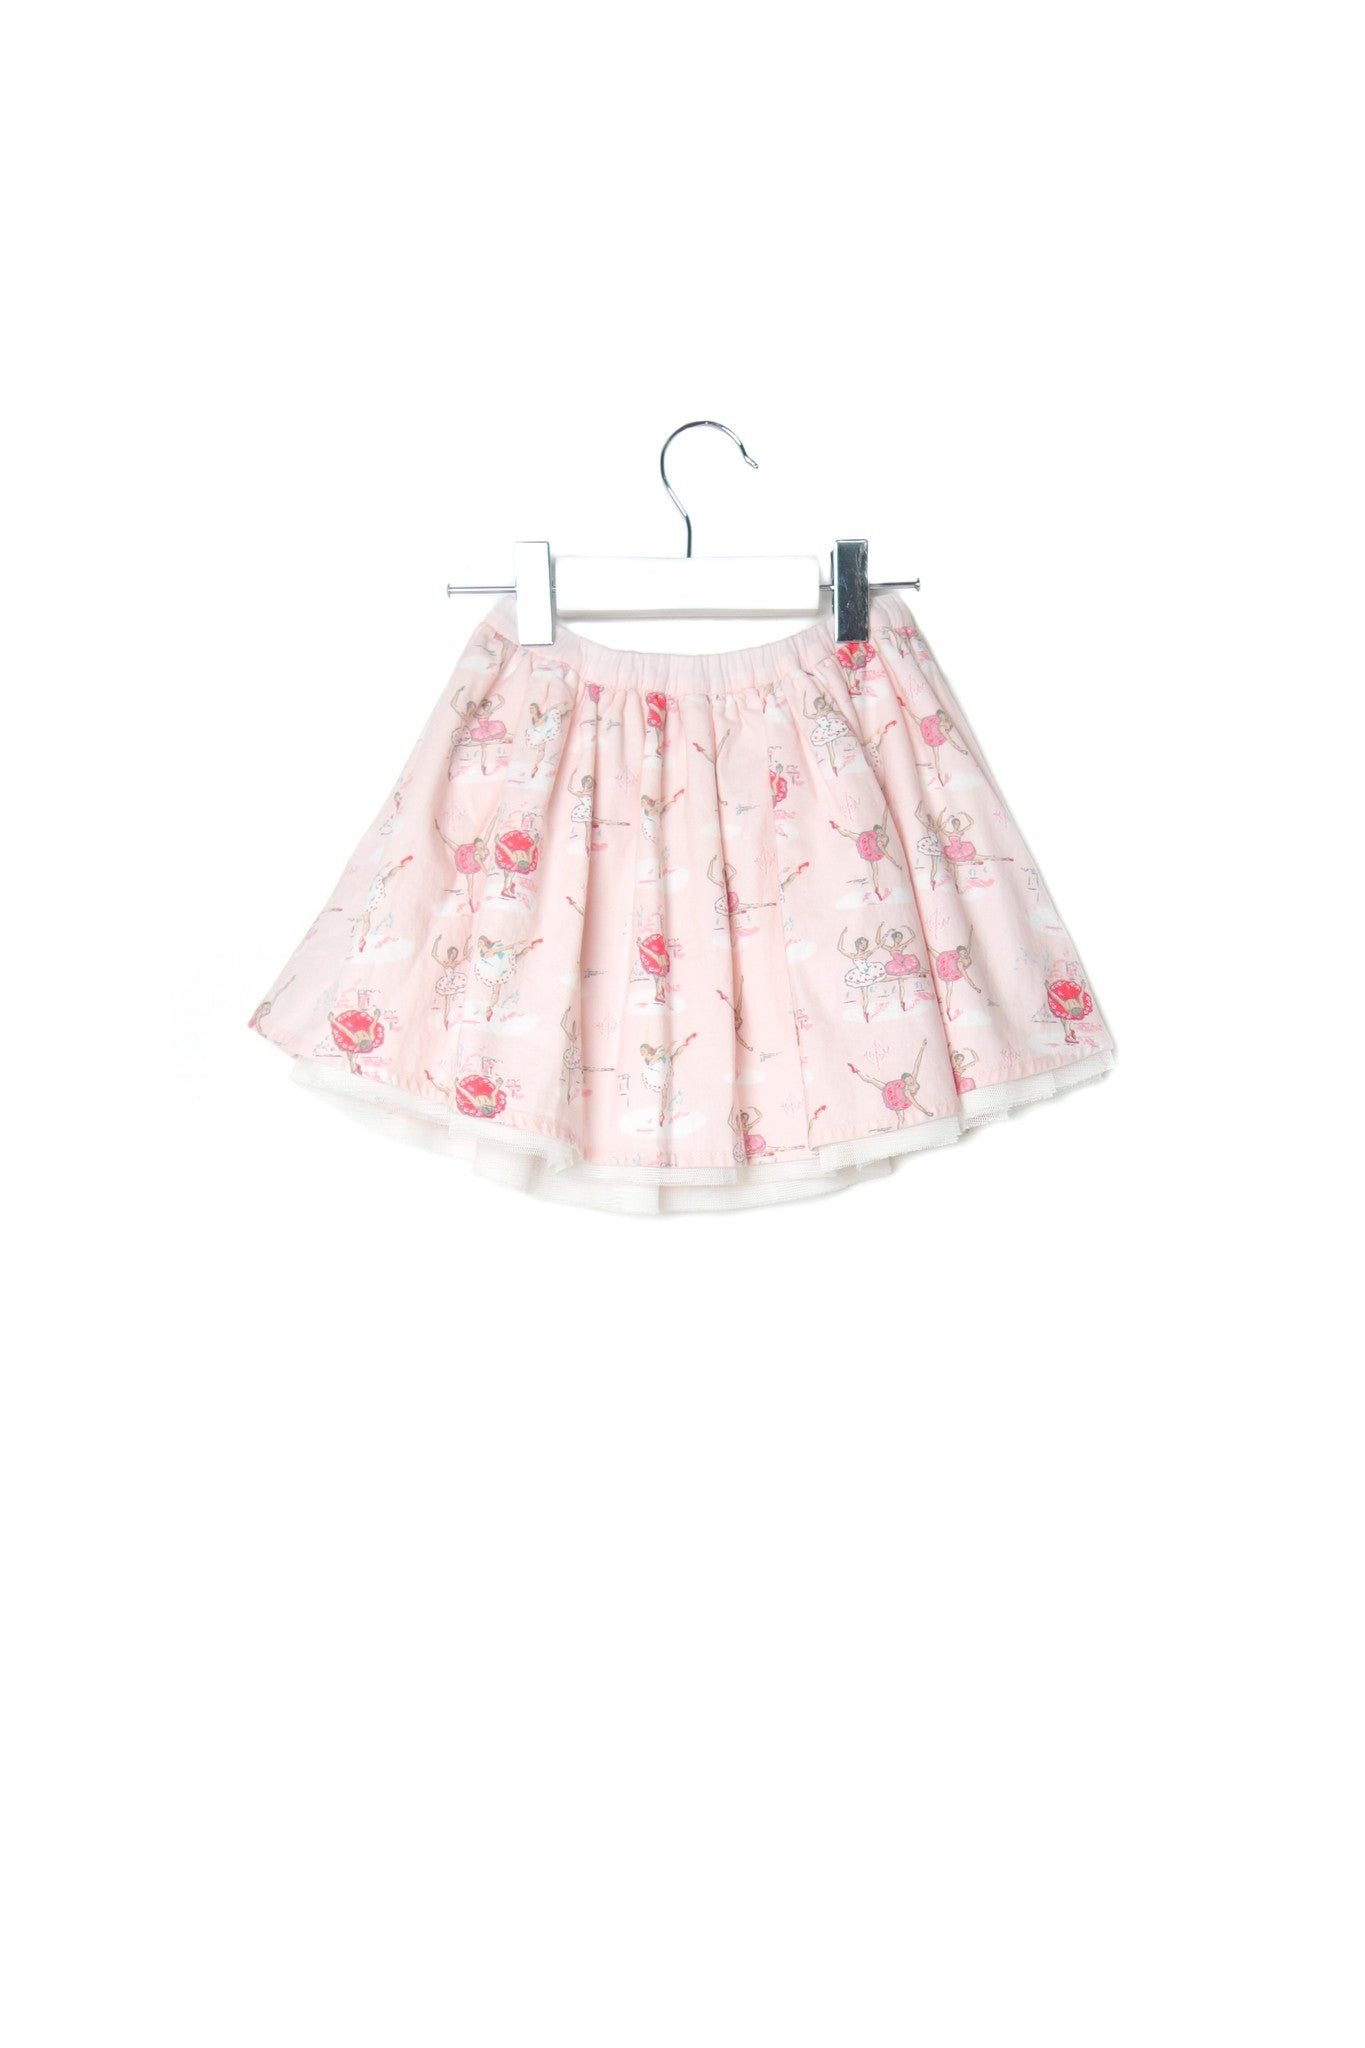 10001912 Cath Kidston Kids~Skirt 2-3T at Retykle